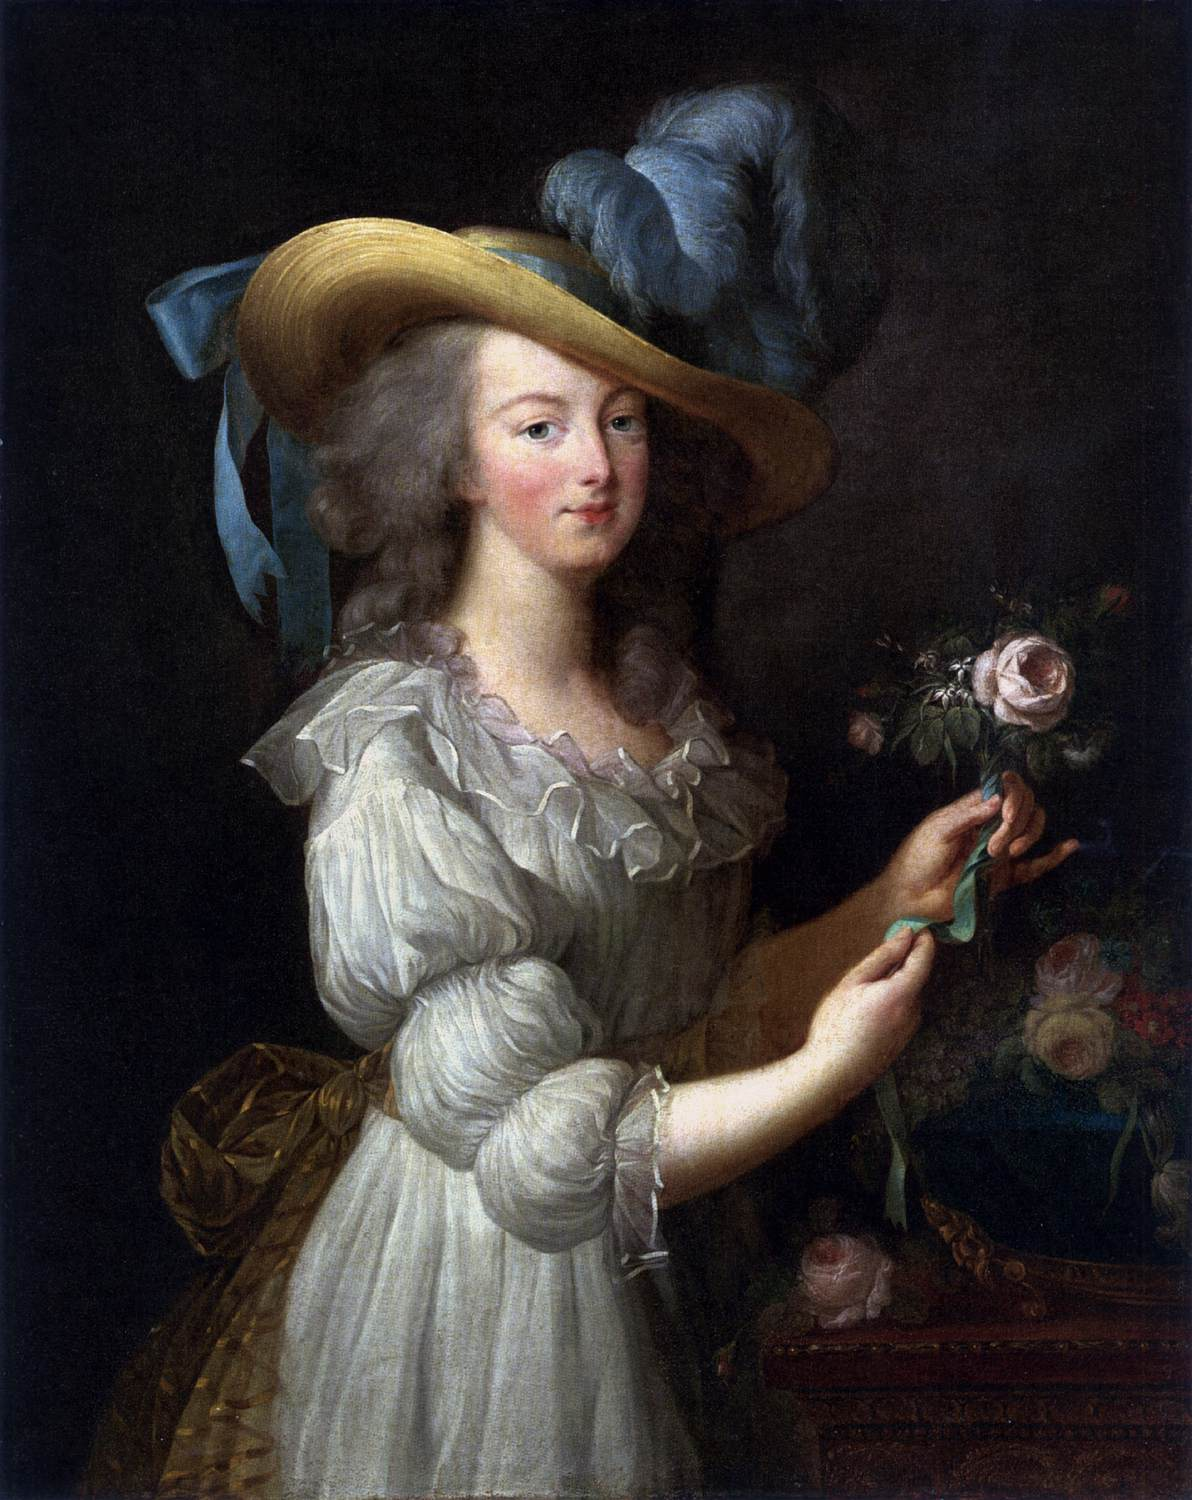 Marie Antoinette S Portrait That Caused Scandal